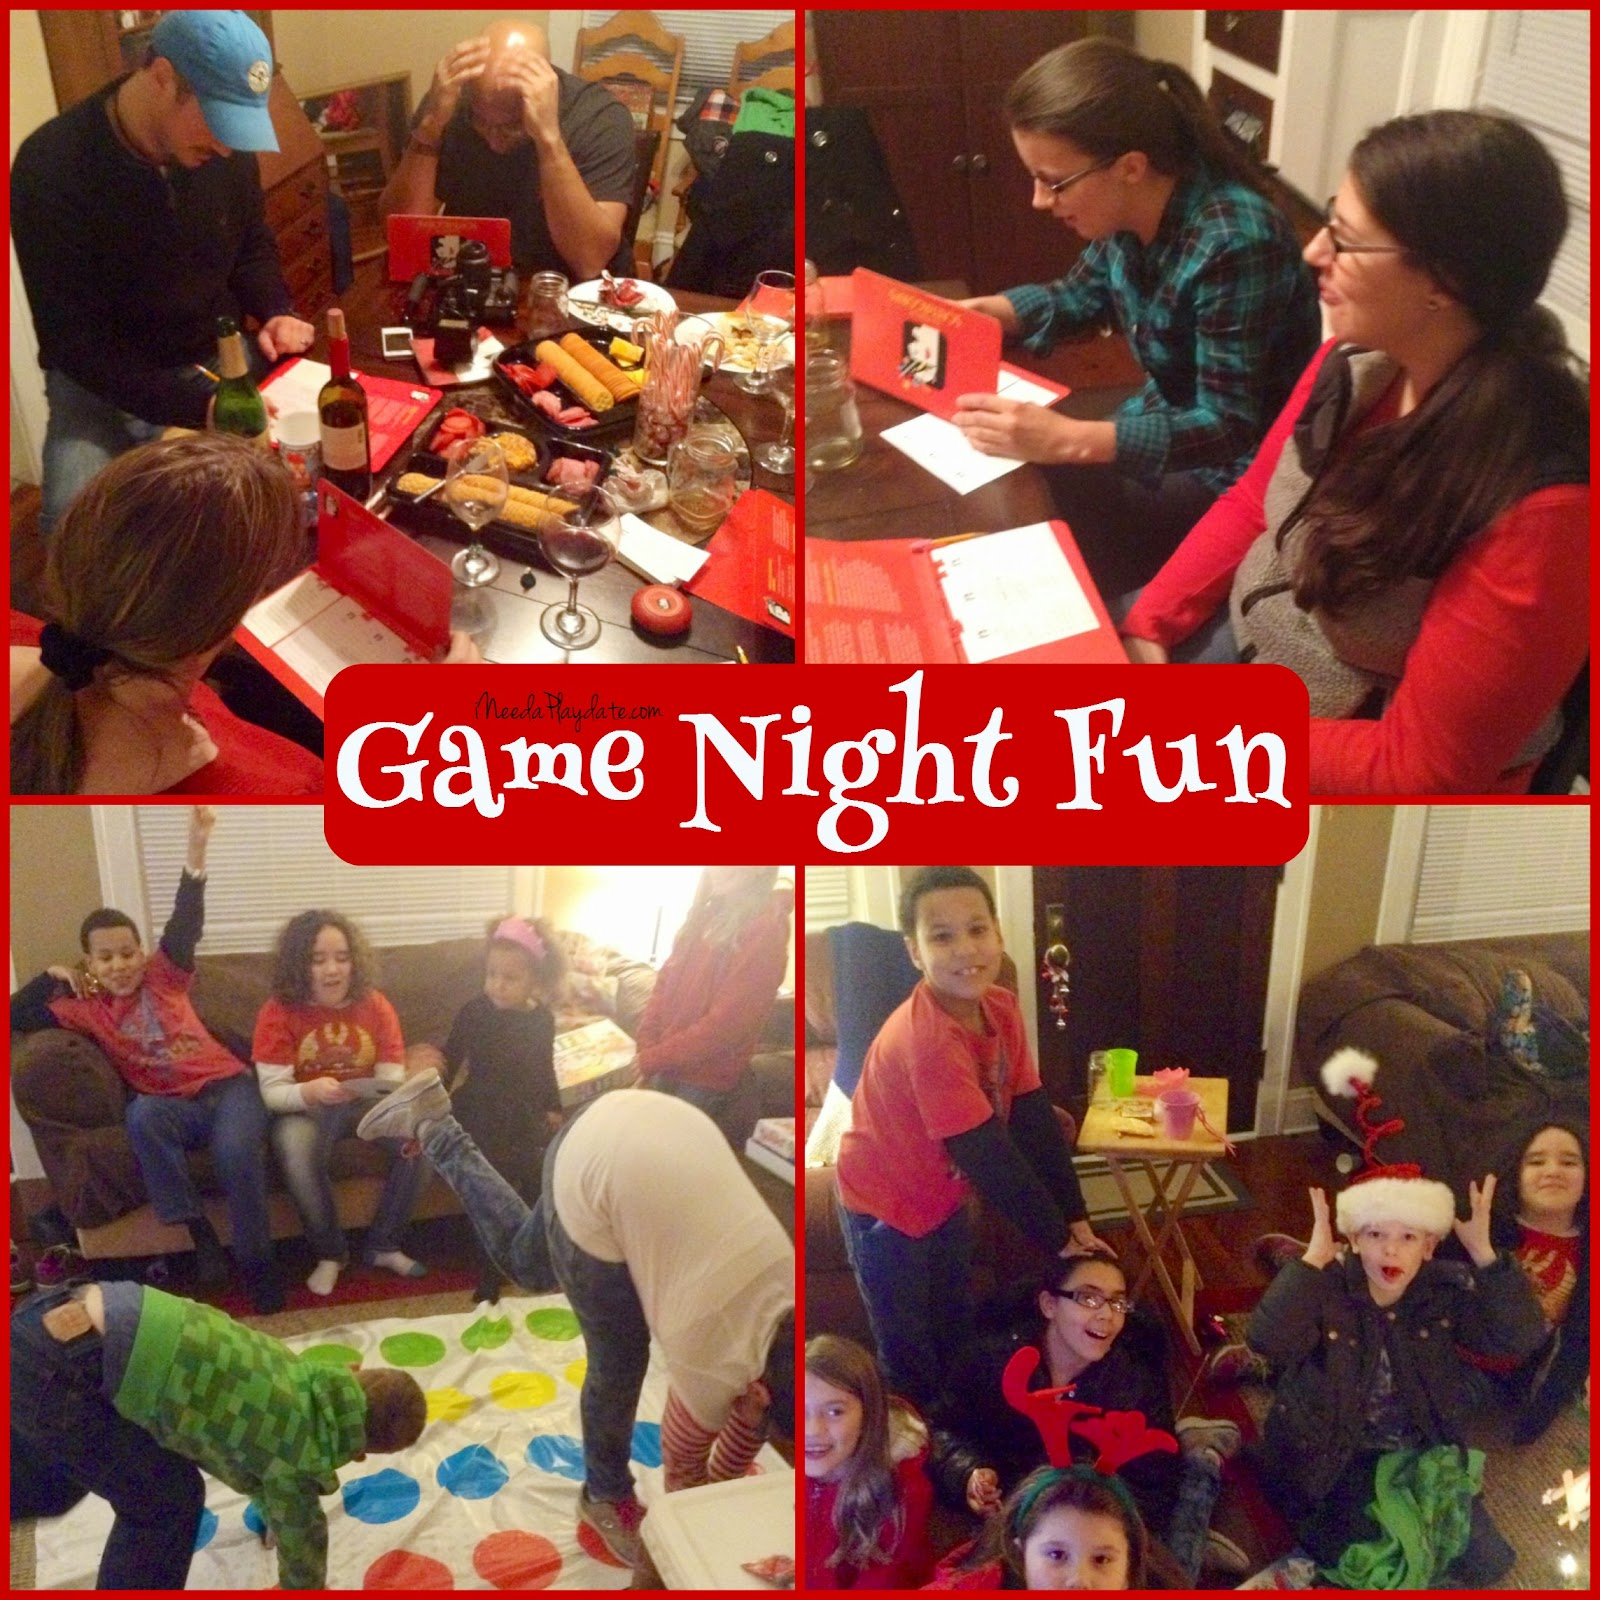 Game Night Fun with HouseParty and iNeedaPlaydate